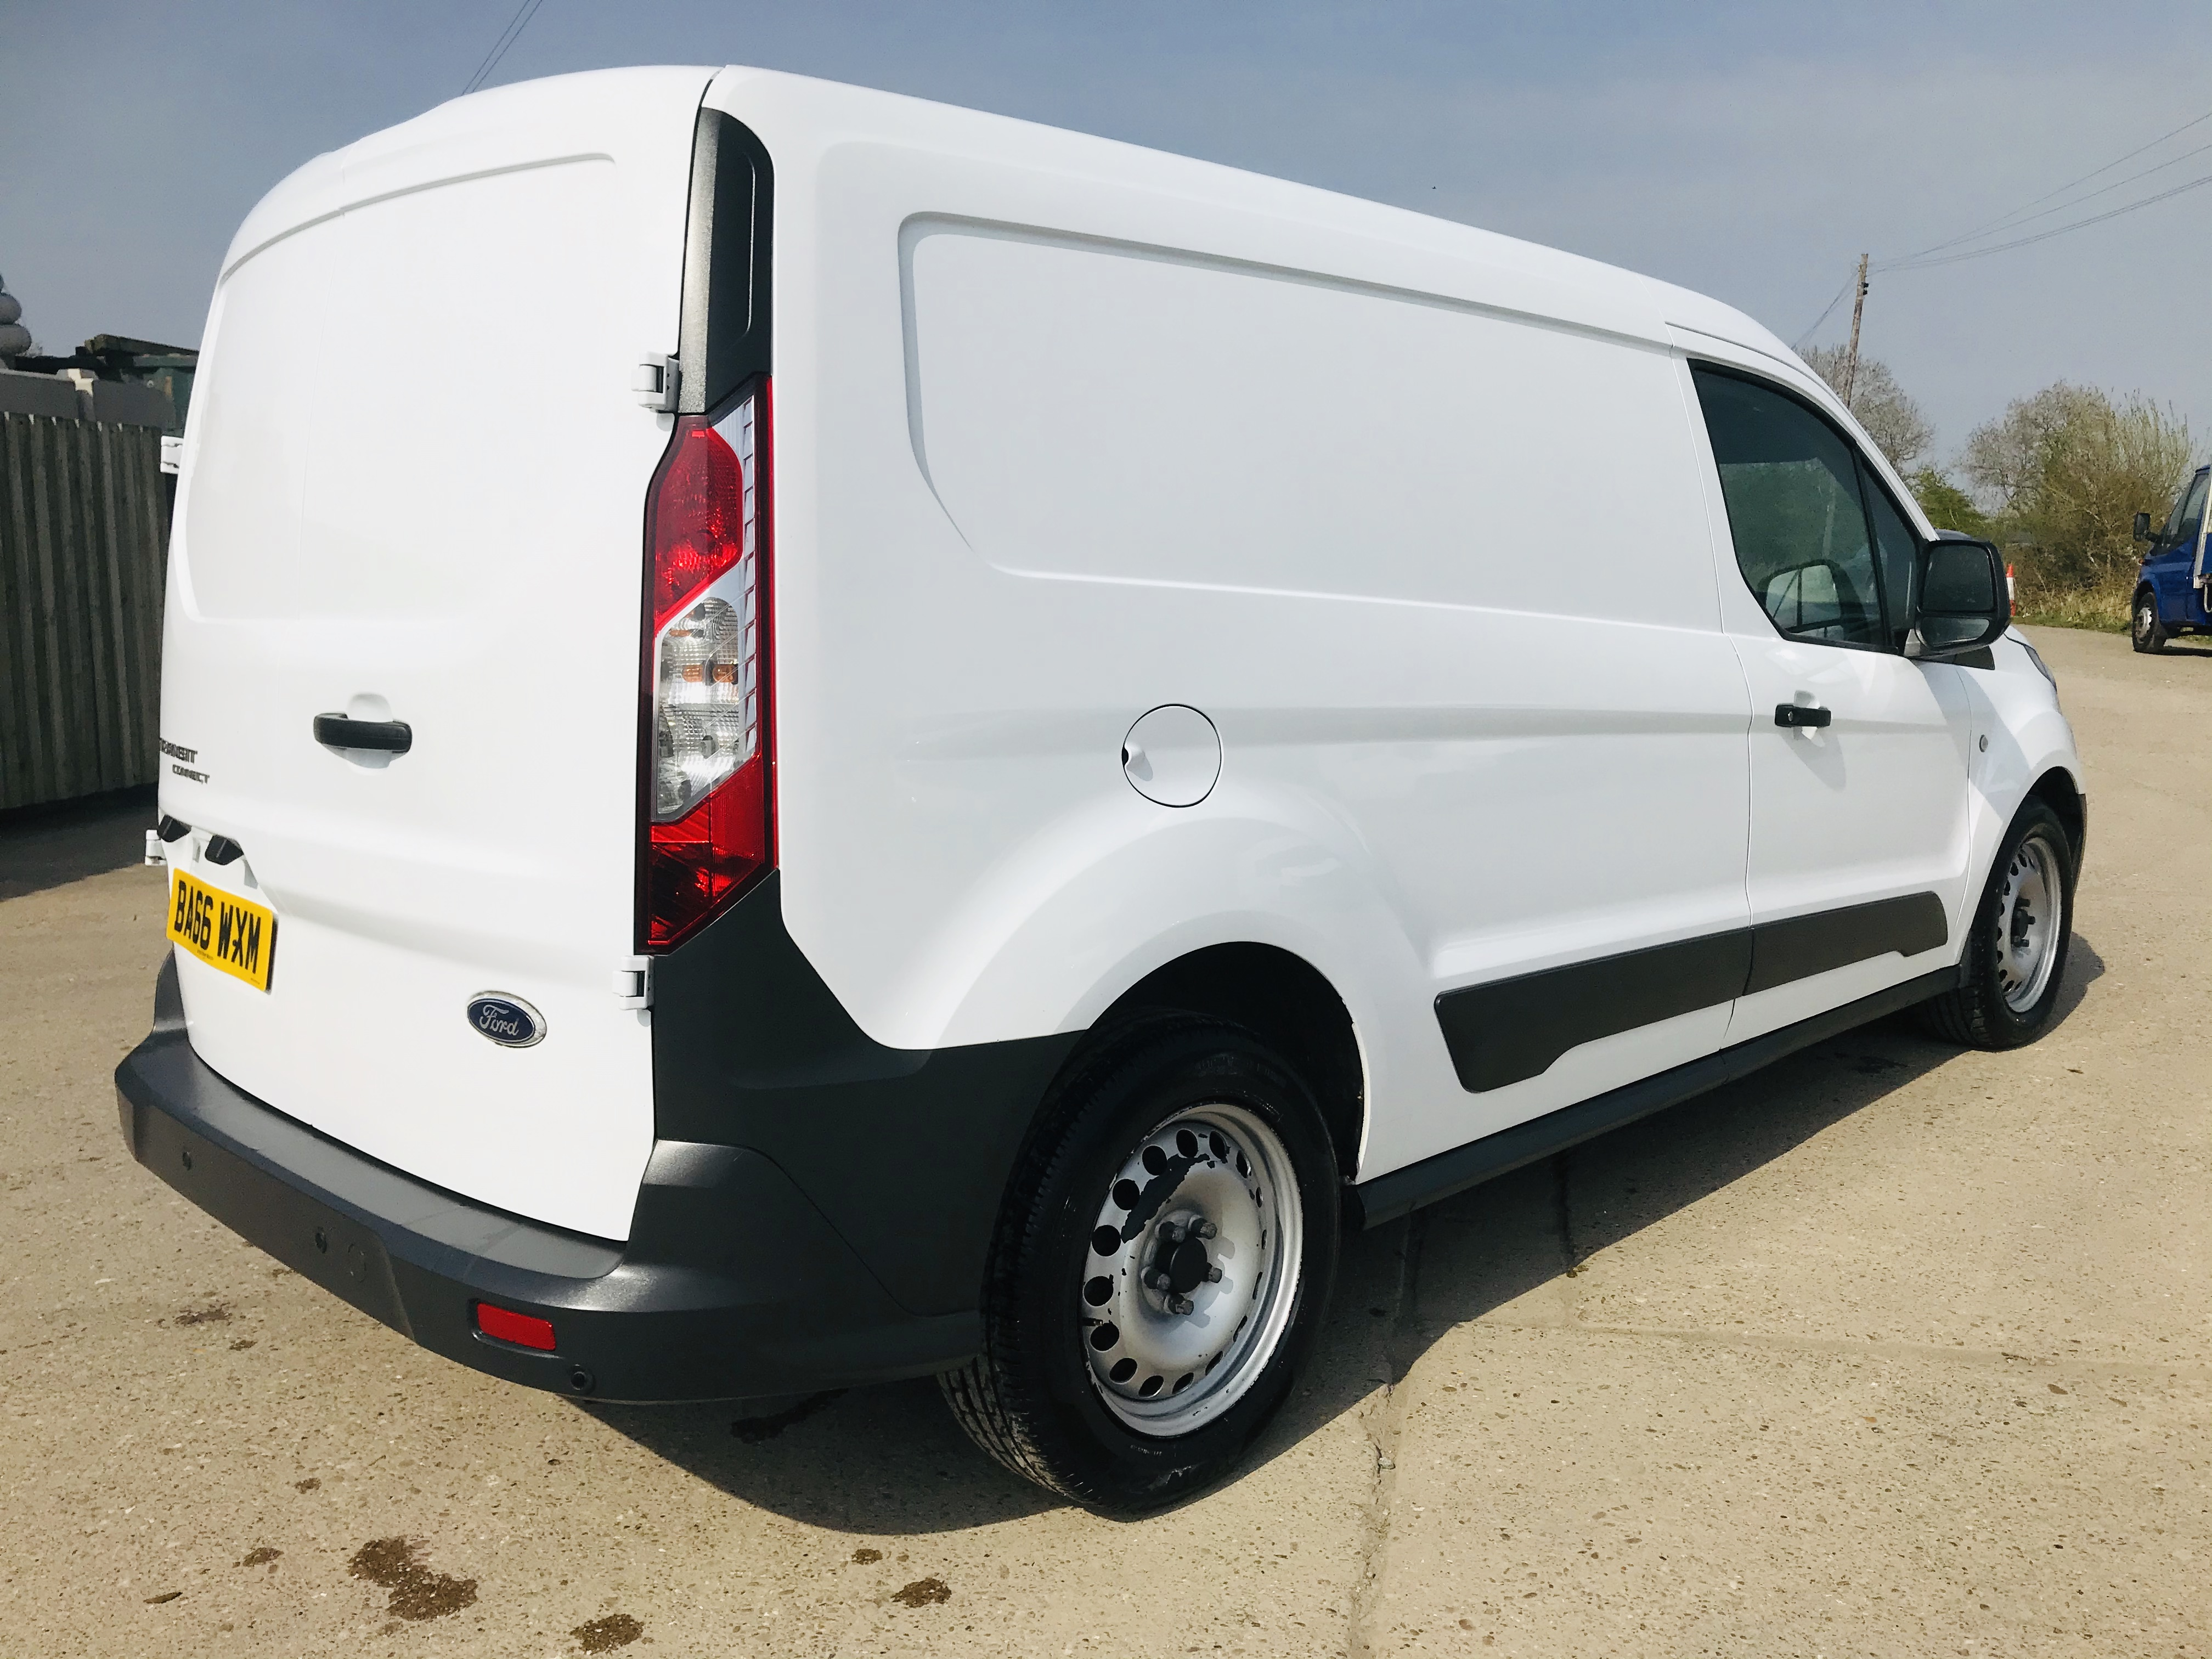 """ON SALE FORD TRANSIT CONNECT 1.6TDCI ECO-TECH 'LWB' 2017 REG - 1 OWNER - FSH - EURO 6""""ULEZ COMPLIANT - Image 11 of 30"""